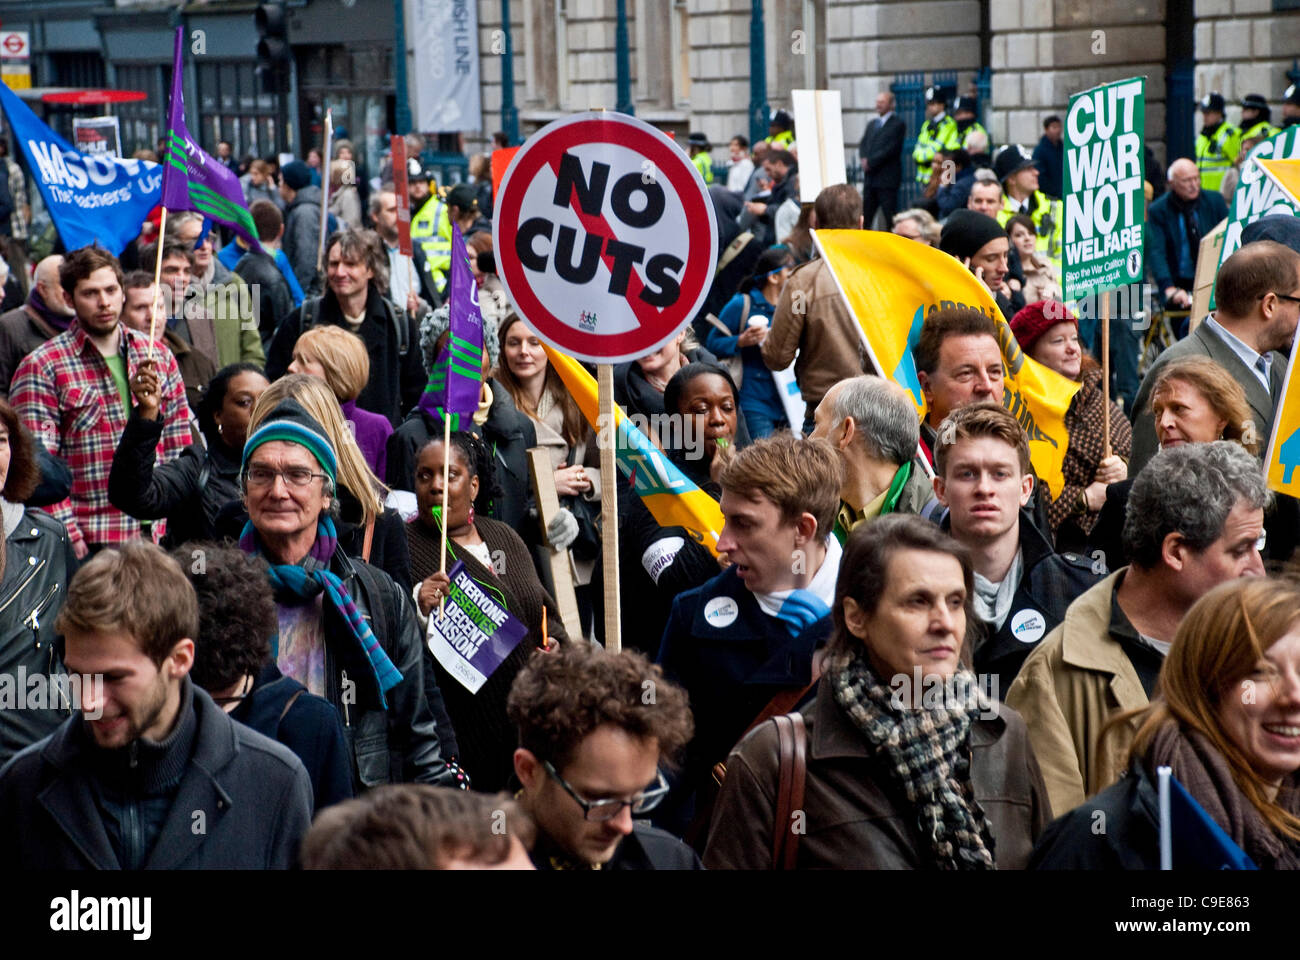 London, UK, 30th Nov, 2011. Thousands of striking public sector workers march through the streets of London in protest - Stock Image